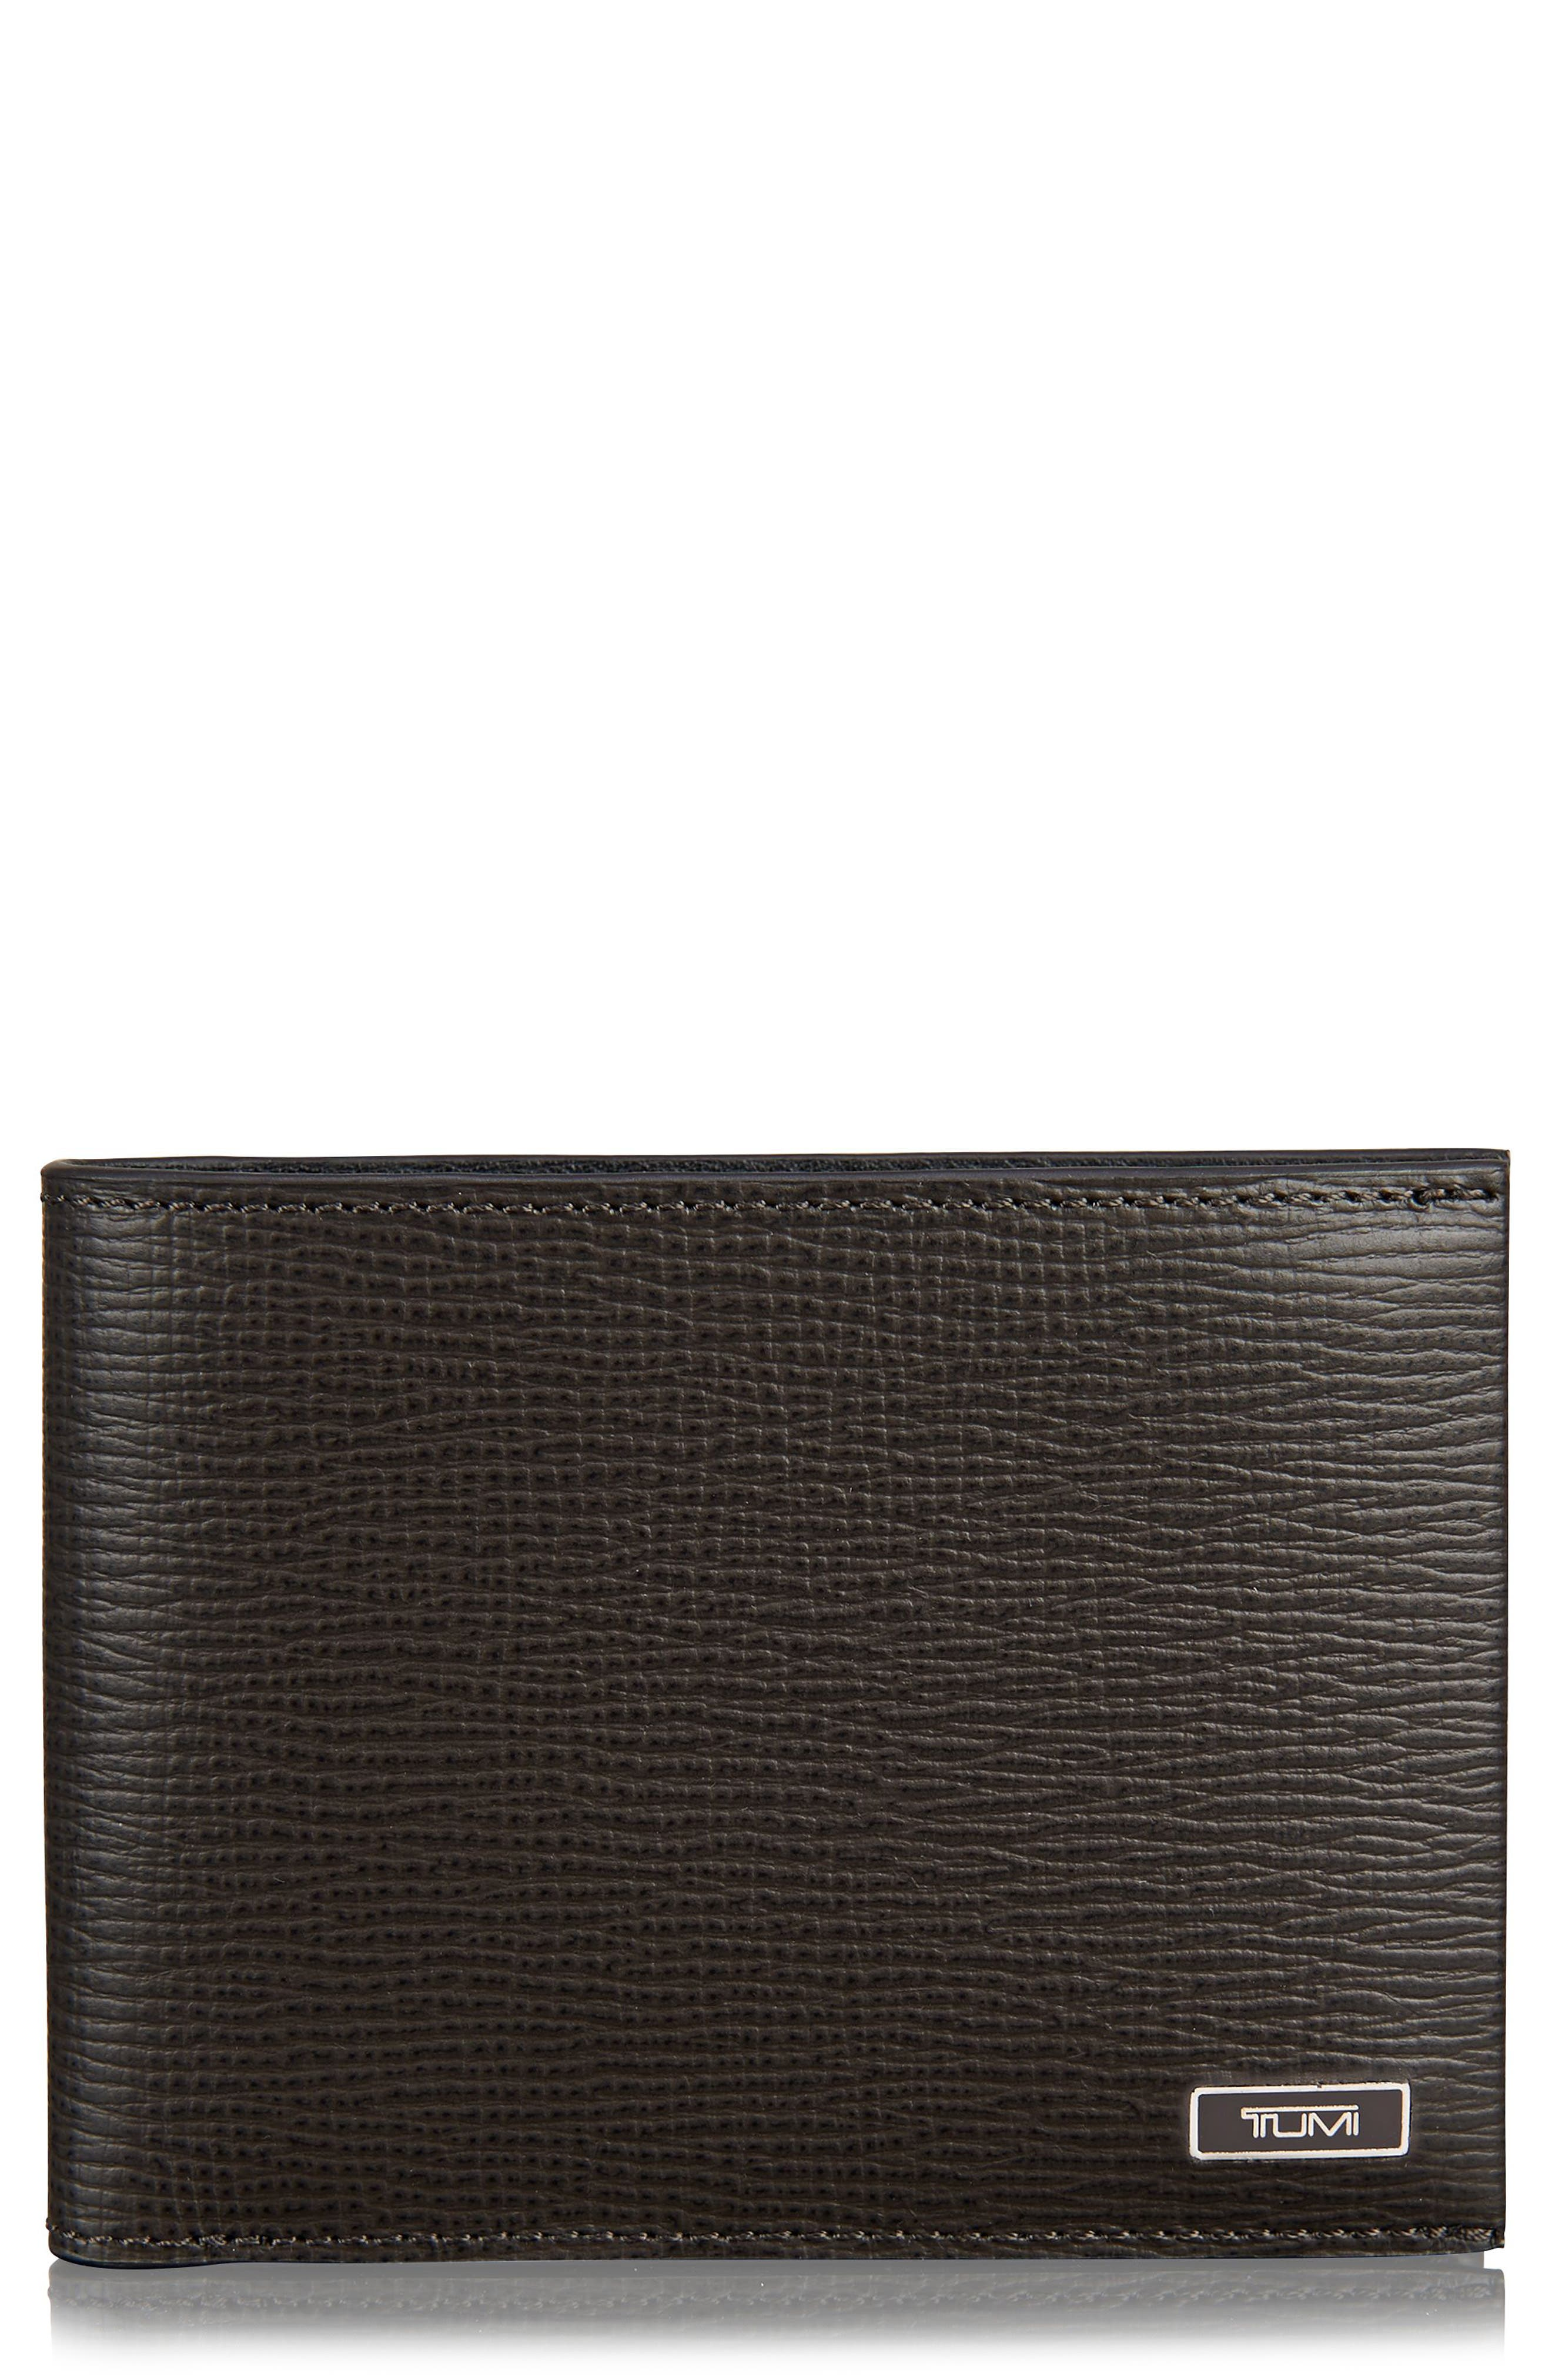 Monaco Leather Wallet,                         Main,                         color, Taupe